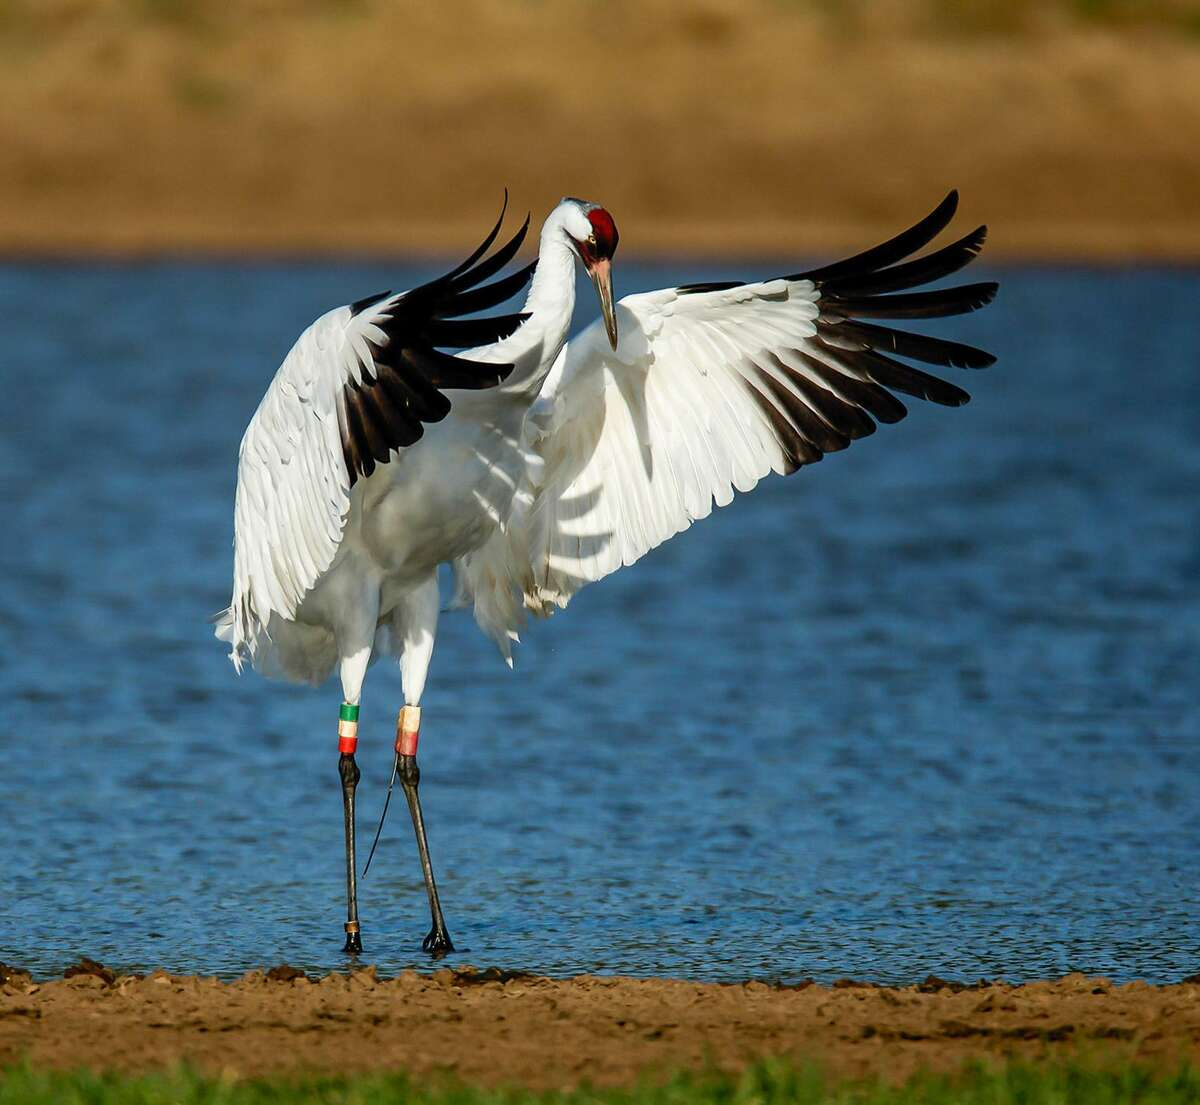 Whooping cranes are an endangered species.